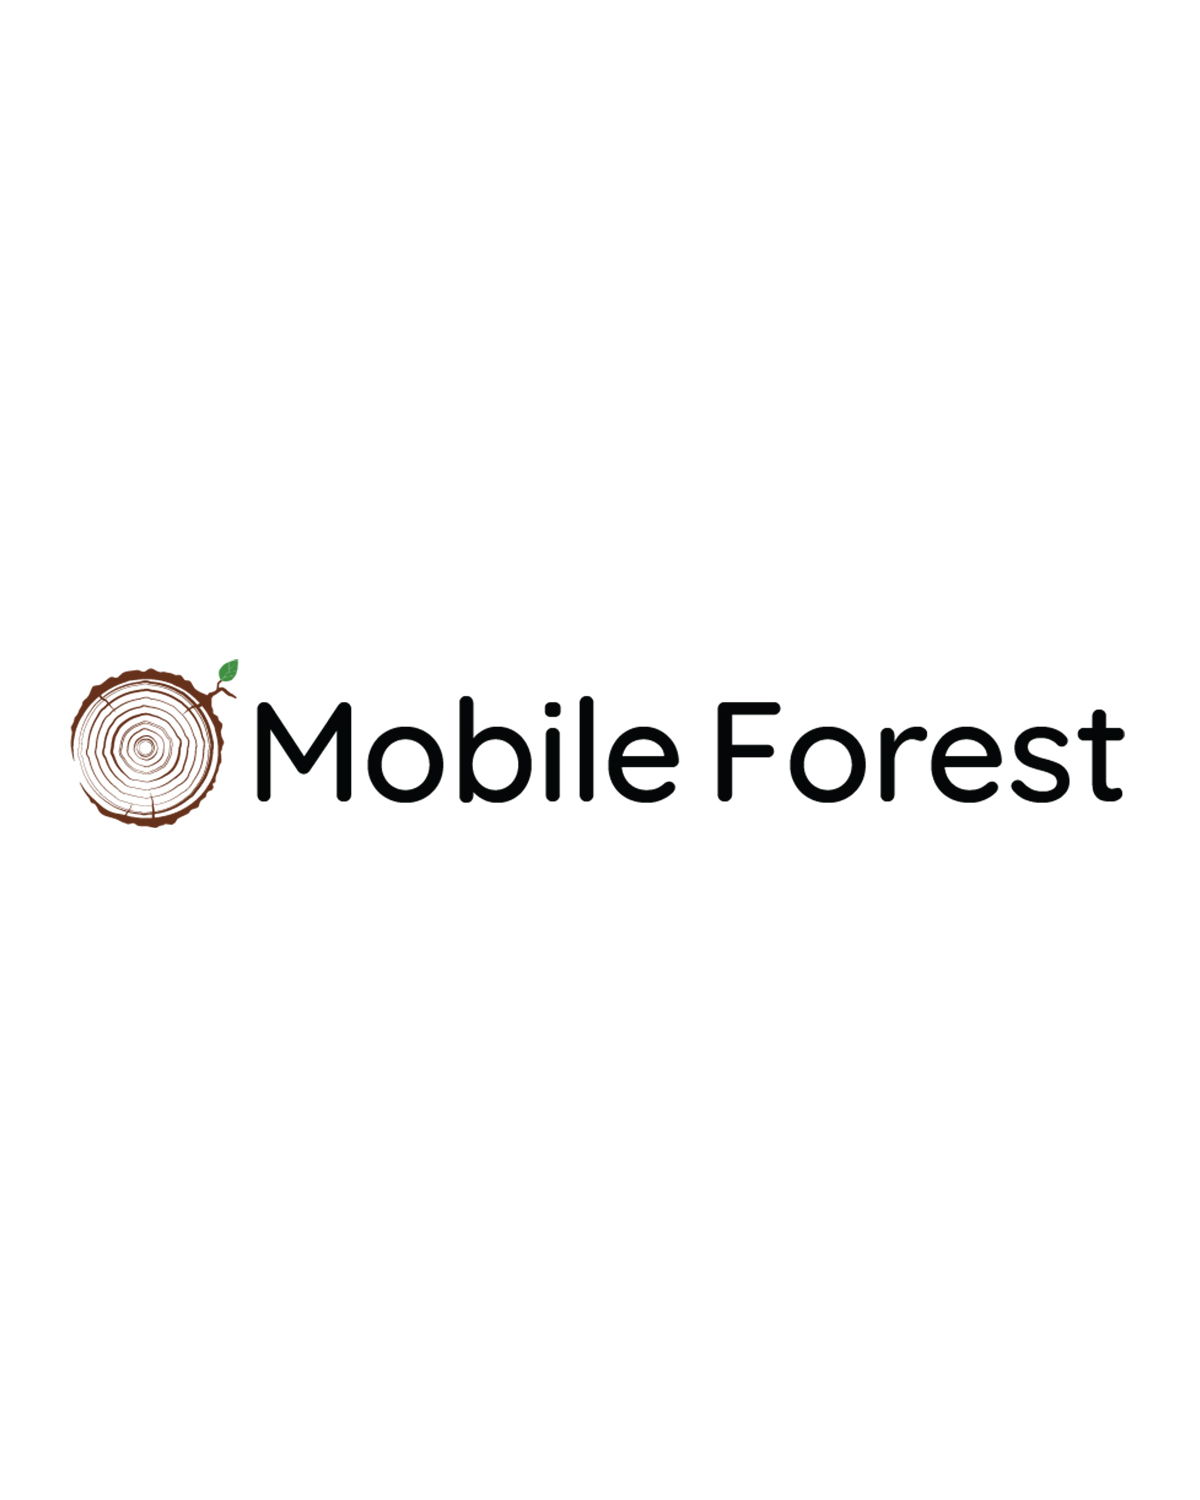 mobileforest-by-publiyou-logo